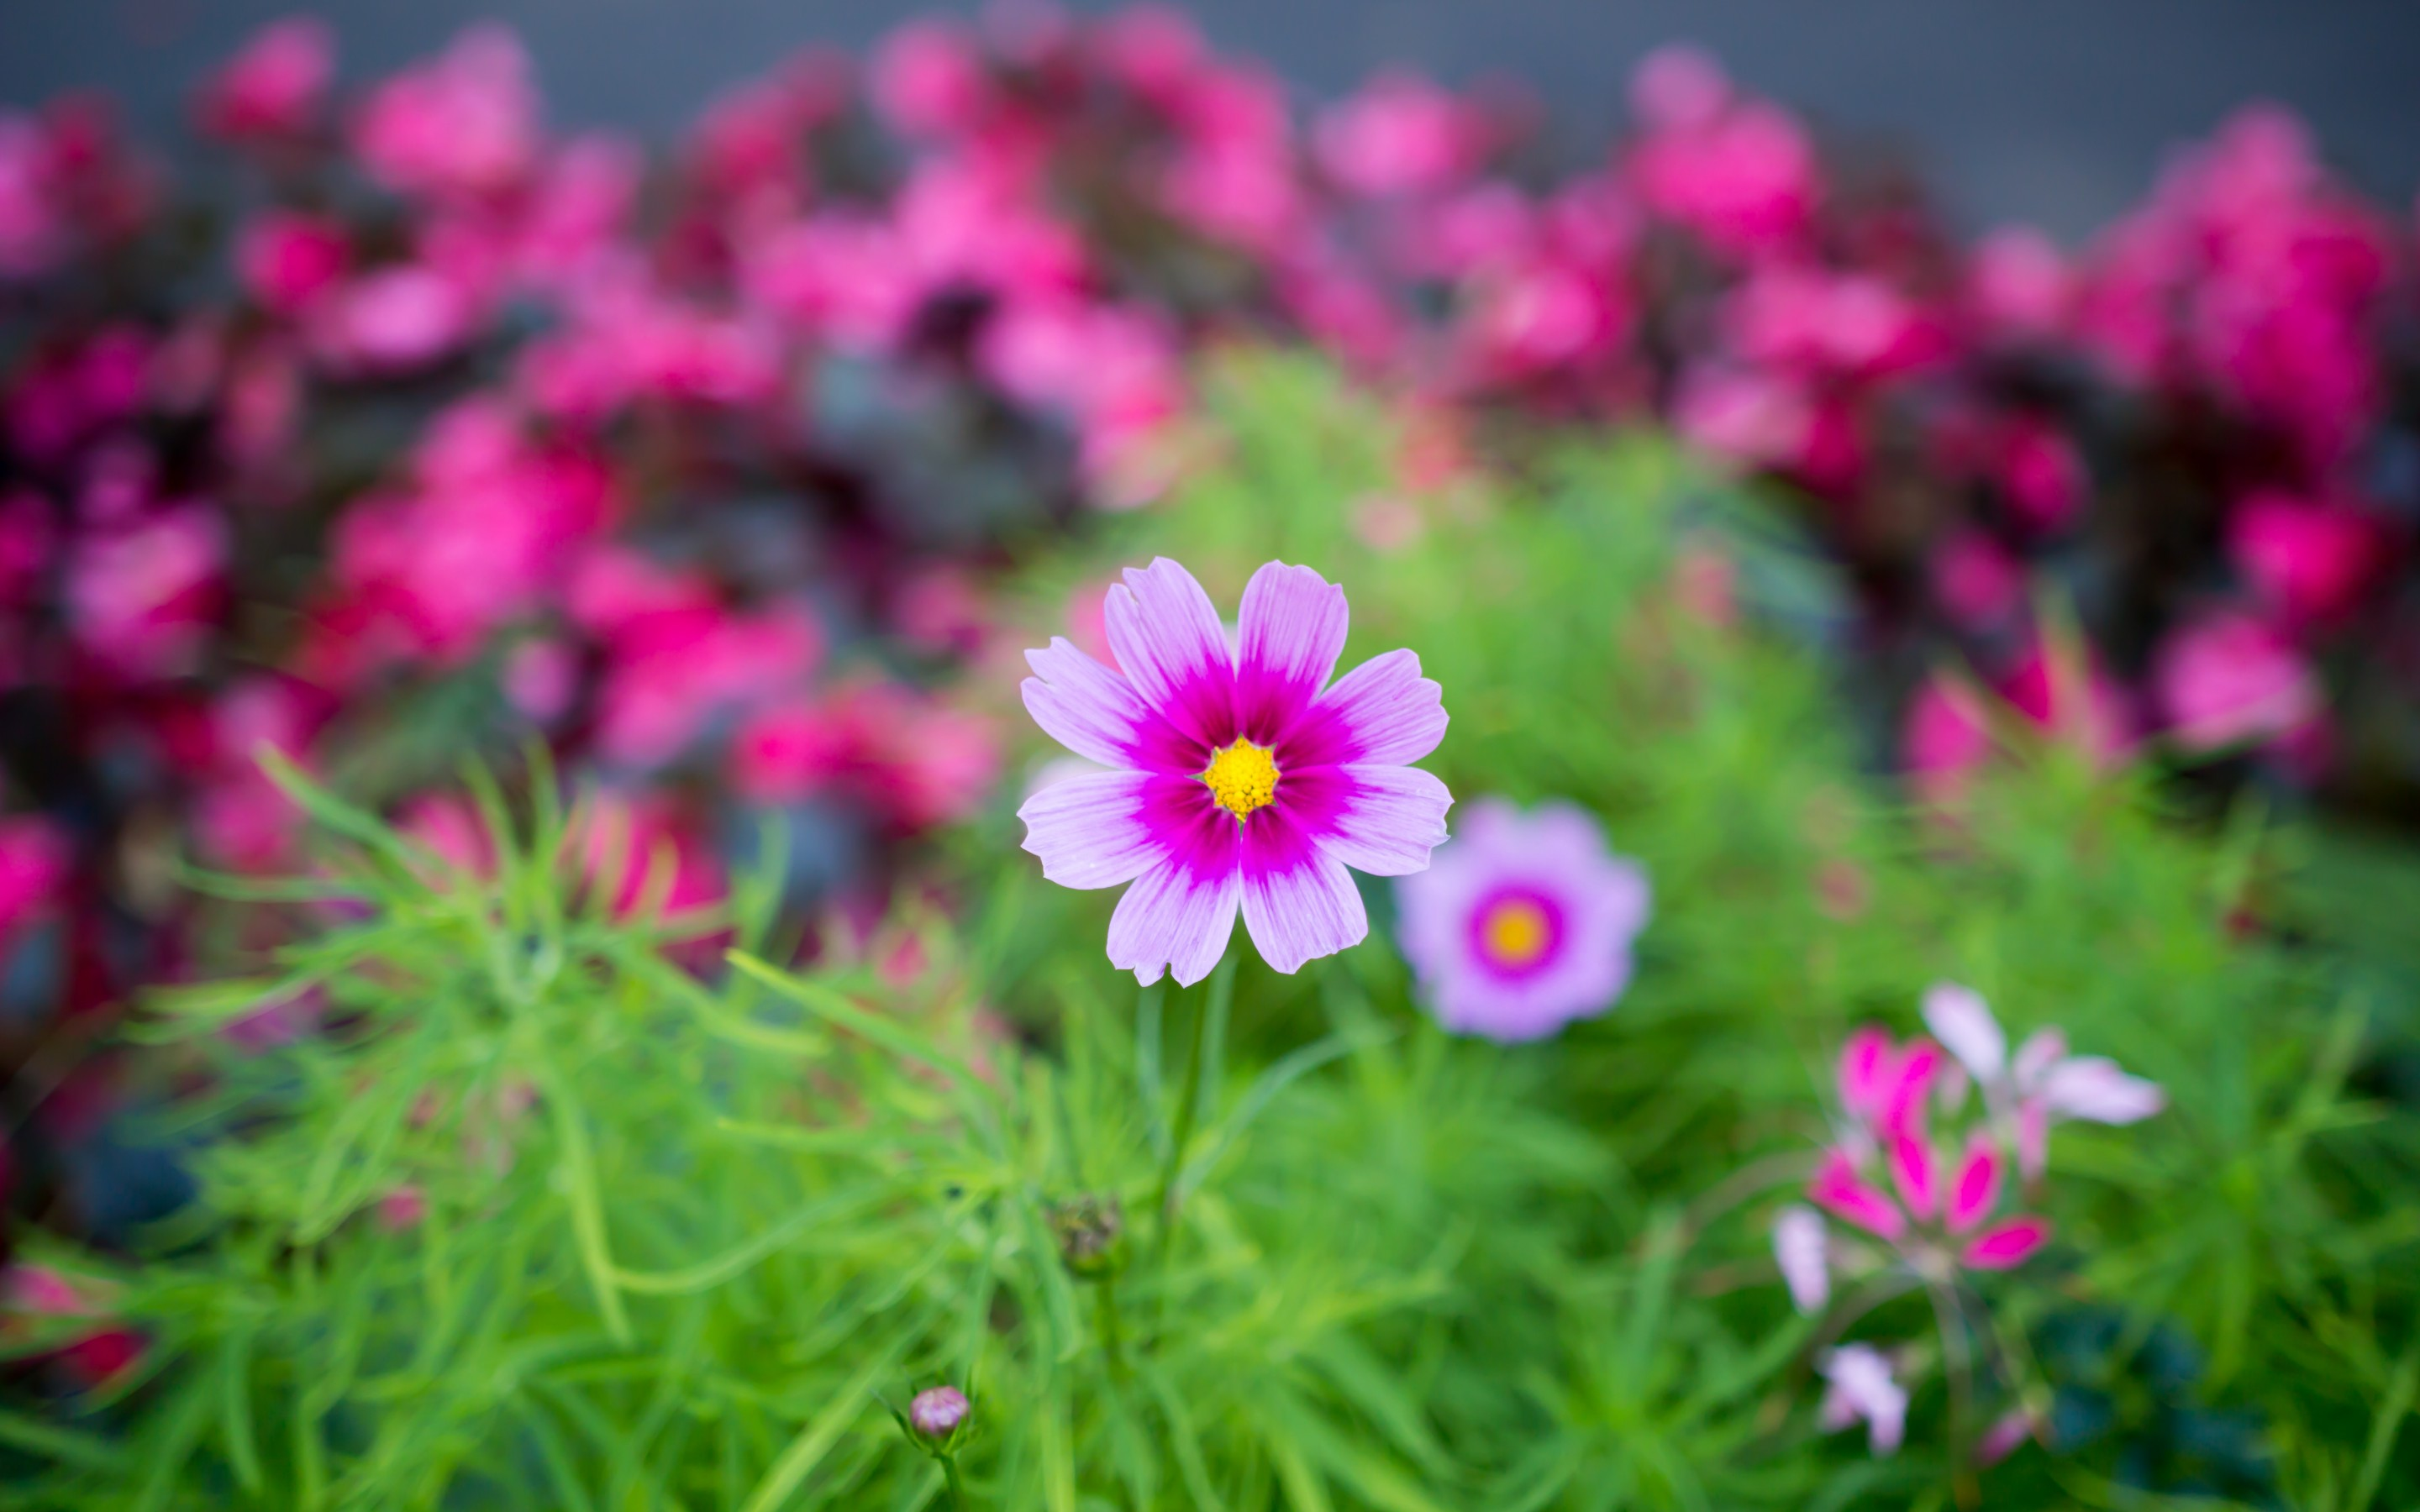 Nature Flower Garden Cosmos Pink Hd Wallpaper Wallpaper 2880x1800